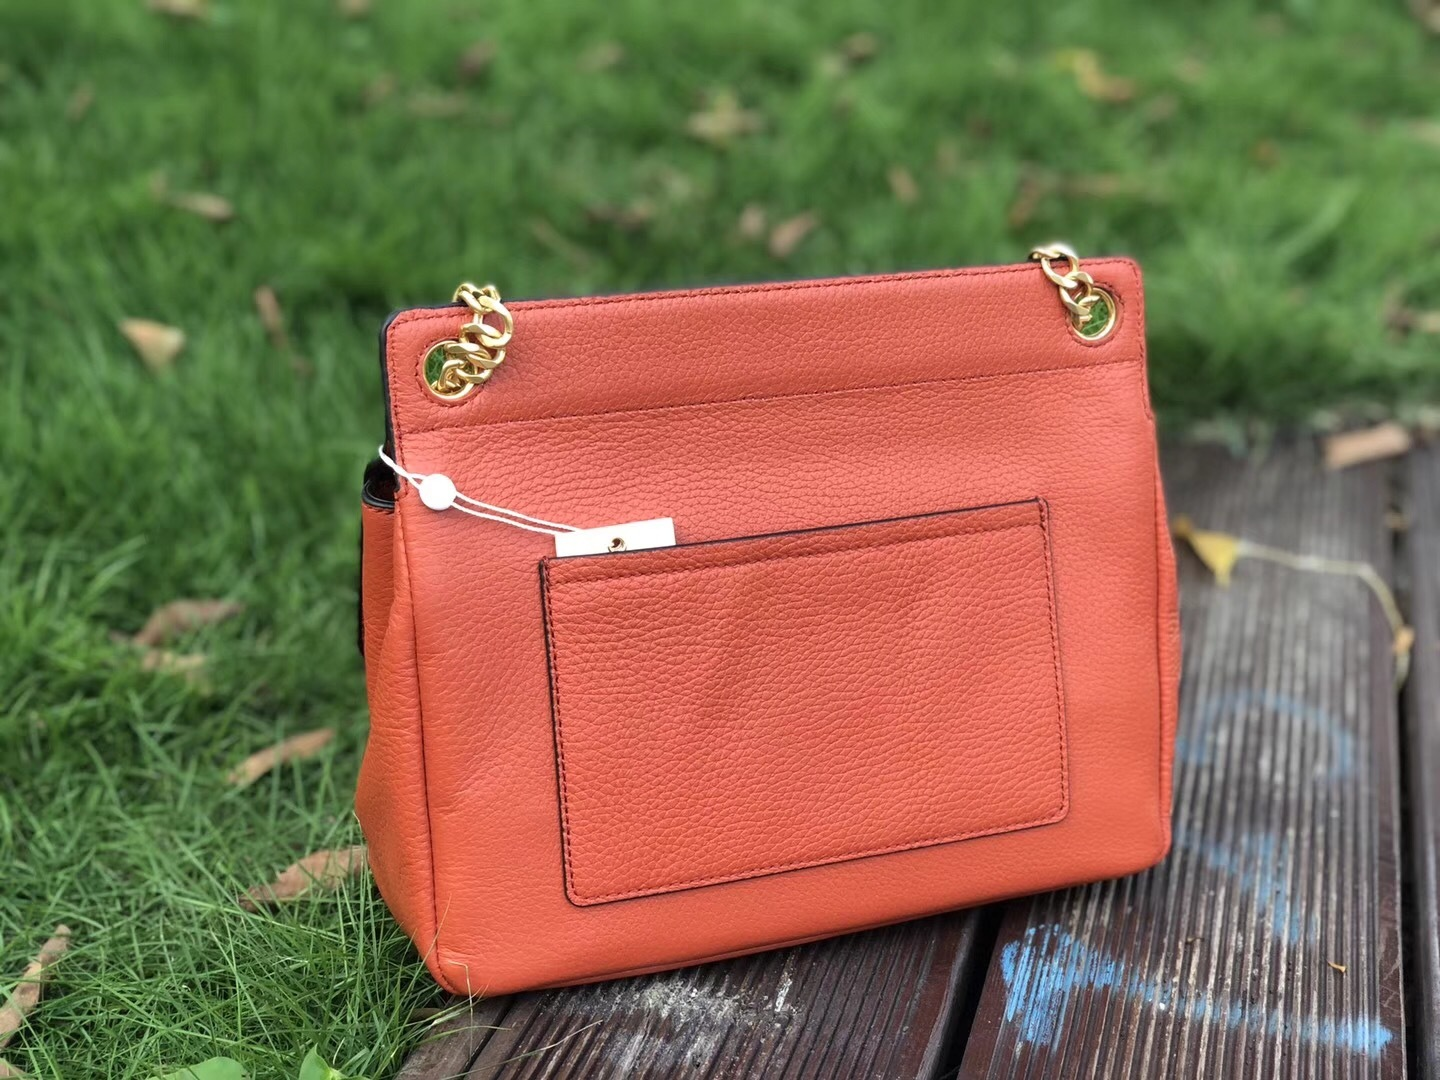 NWT Tory Burch Chelsea Flap Shoulder Bag